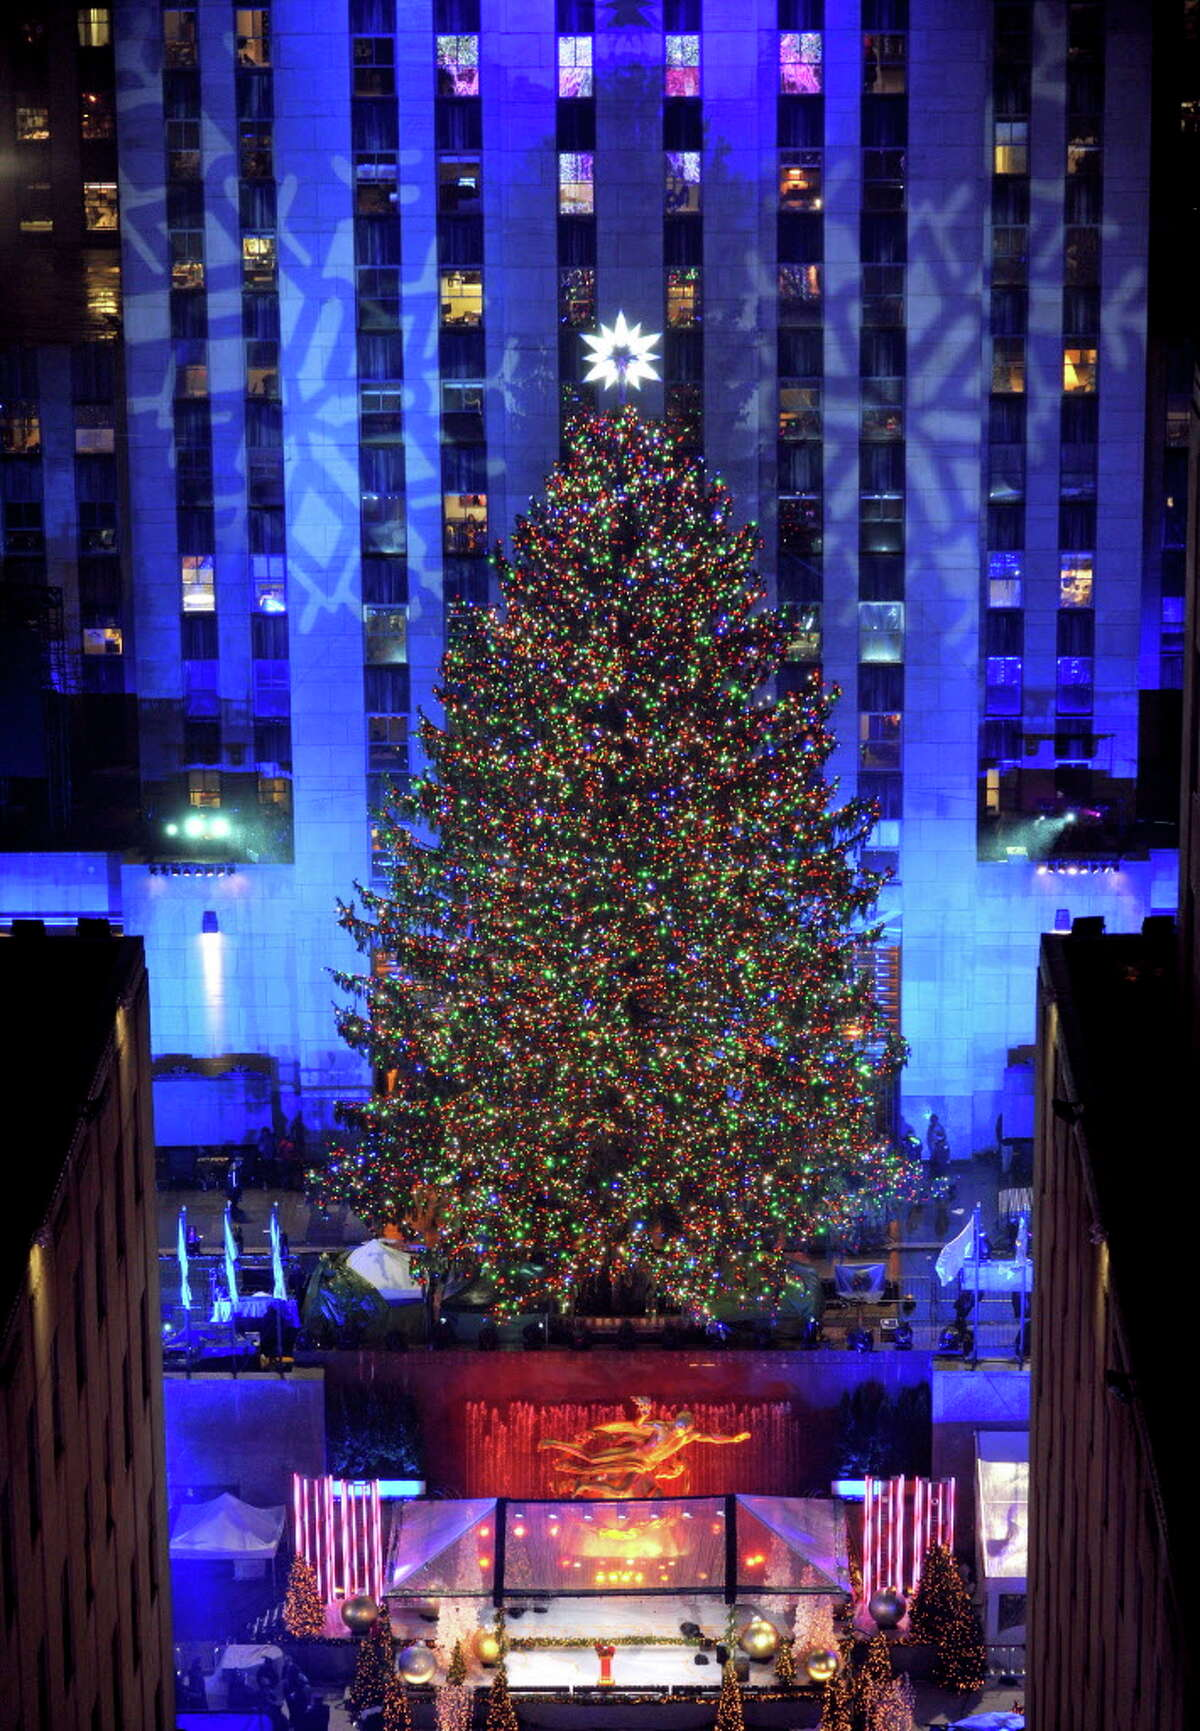 IMAGE DISTRIBUTED FOR TISHMAN SPEYER - The Rockefeller Center Christmas Tree stands lit, Wednesday, Nov. 30, 2016, in New York. The 94-foot tall Norway spruce is covered with more than 50,000 multi-colored LED lights. (Photo by Diane Bondareff/Invision for Tishman Speyer/AP Images) ORG XMIT: NYLB107